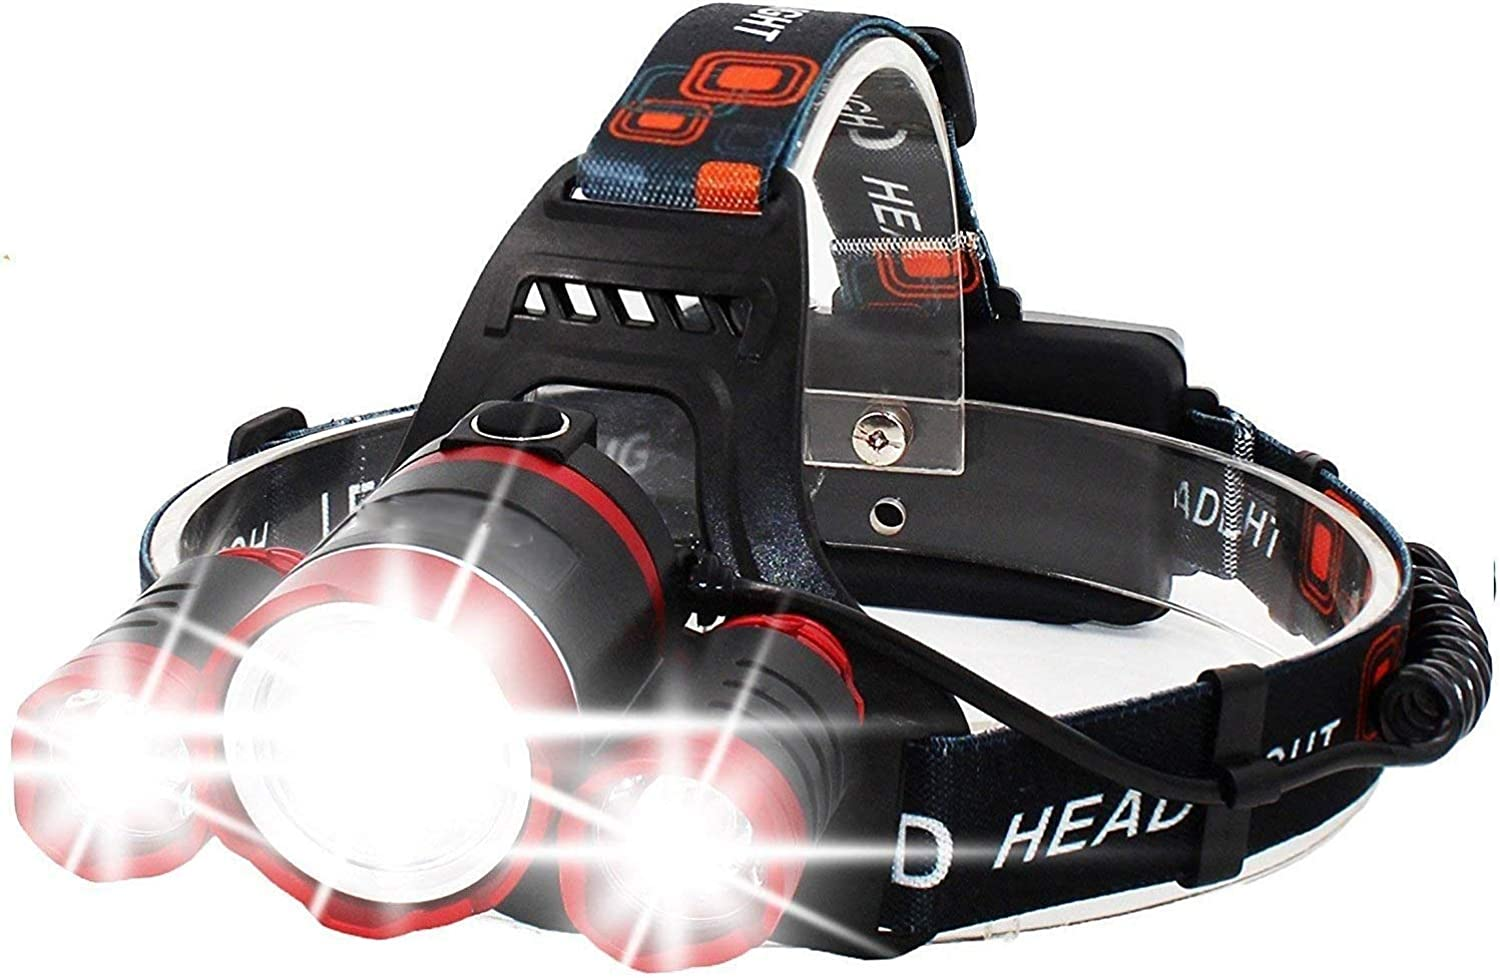 Jumedy Super Bright Headlamp High Lumens 4 Modes Adjustable Waterproof Zoomable LED Headlight with Rechargeable Batteries for Camping Hiking Fishing Reading